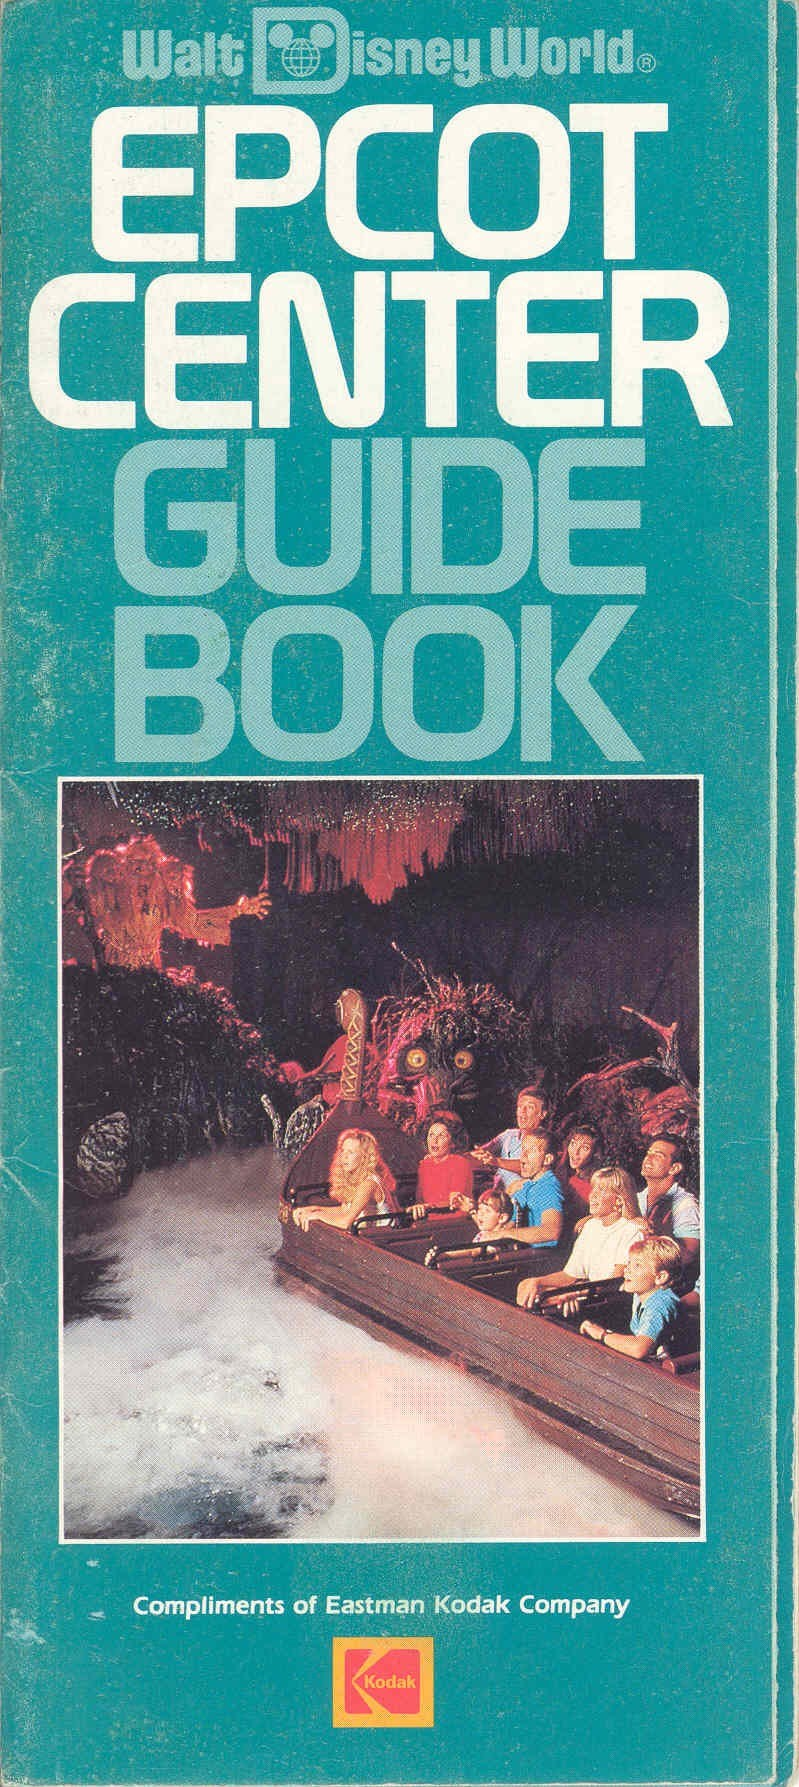 Epcot Center Guide Book 1989